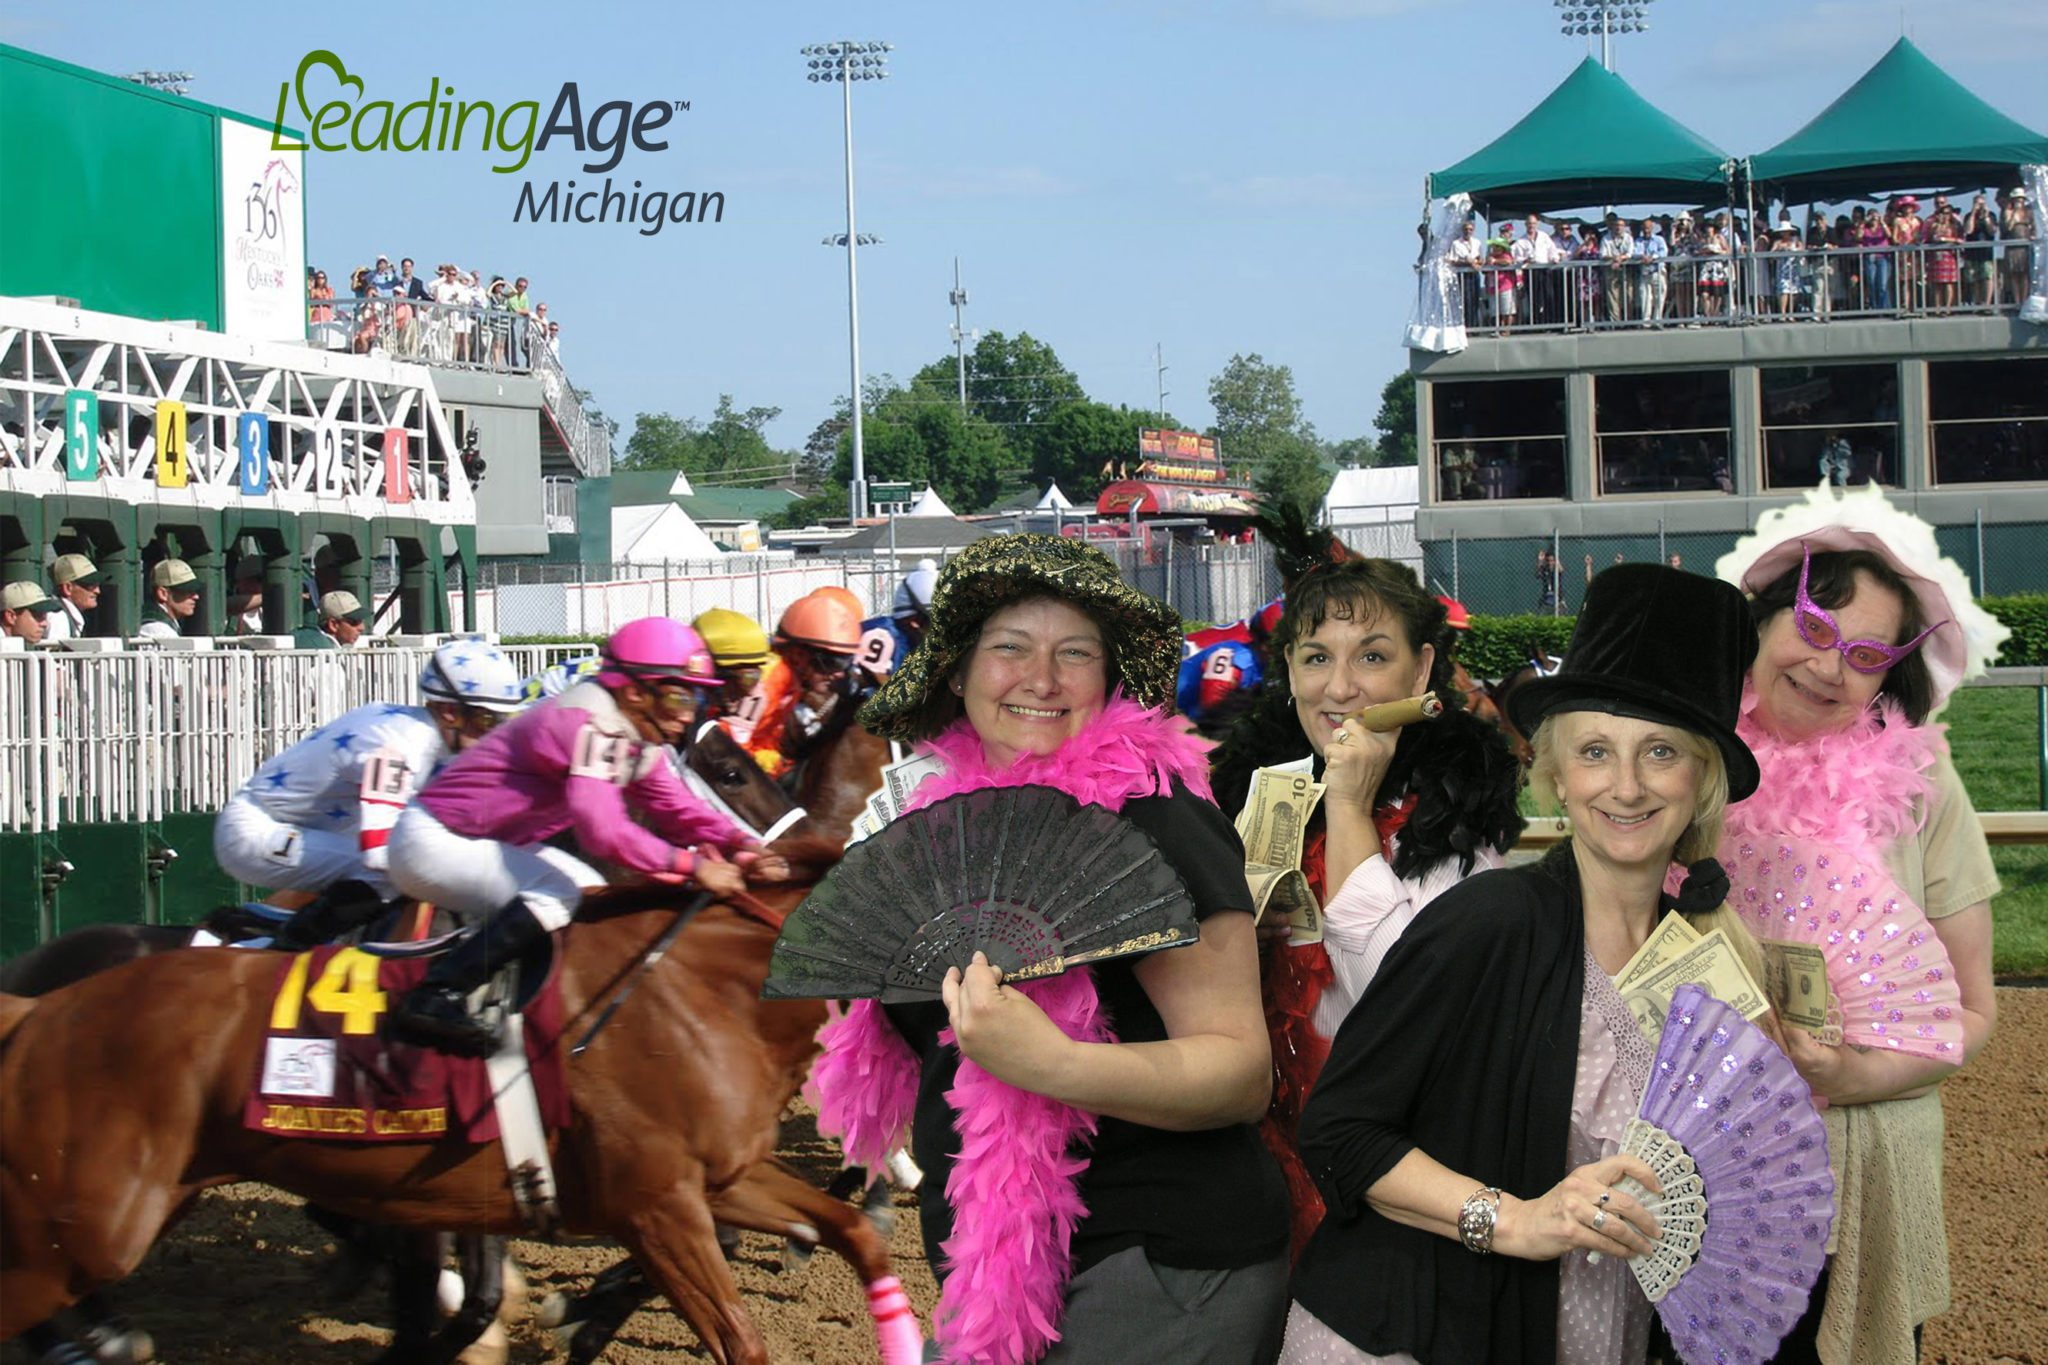 Ladies at the horse track